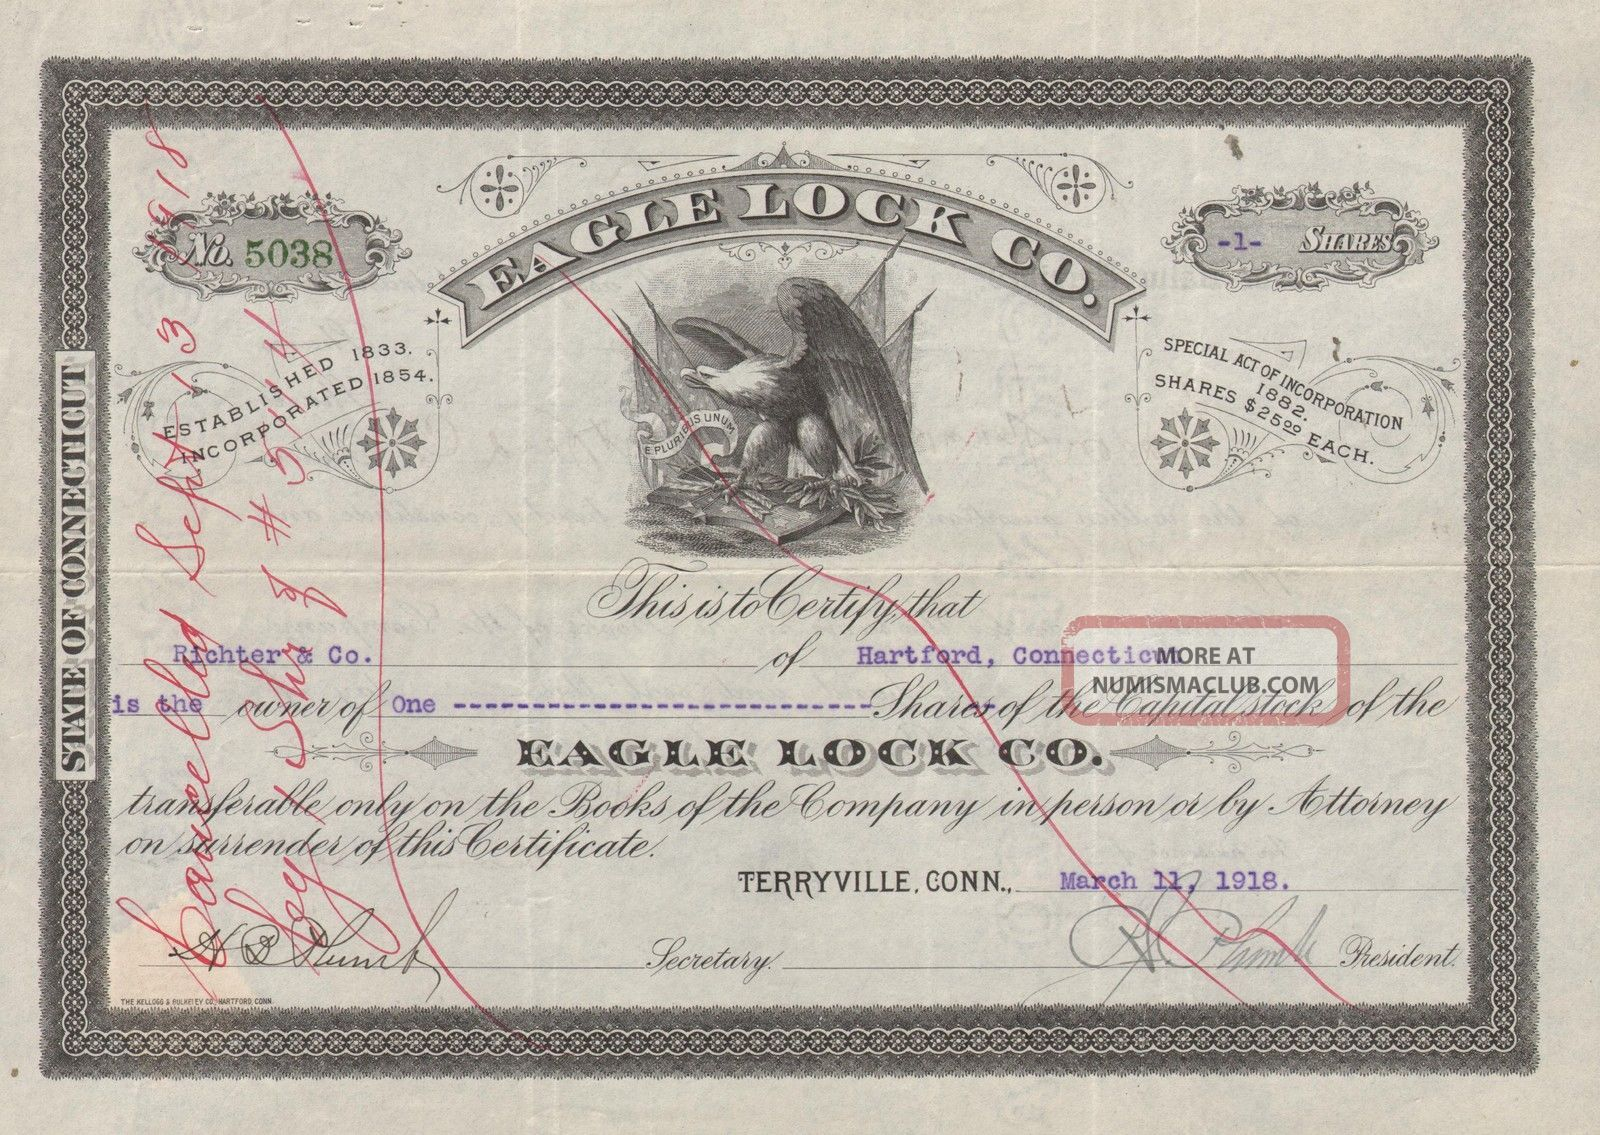 Usa Eagle Lock Co Stock Certificate 1918 Connecticut World photo